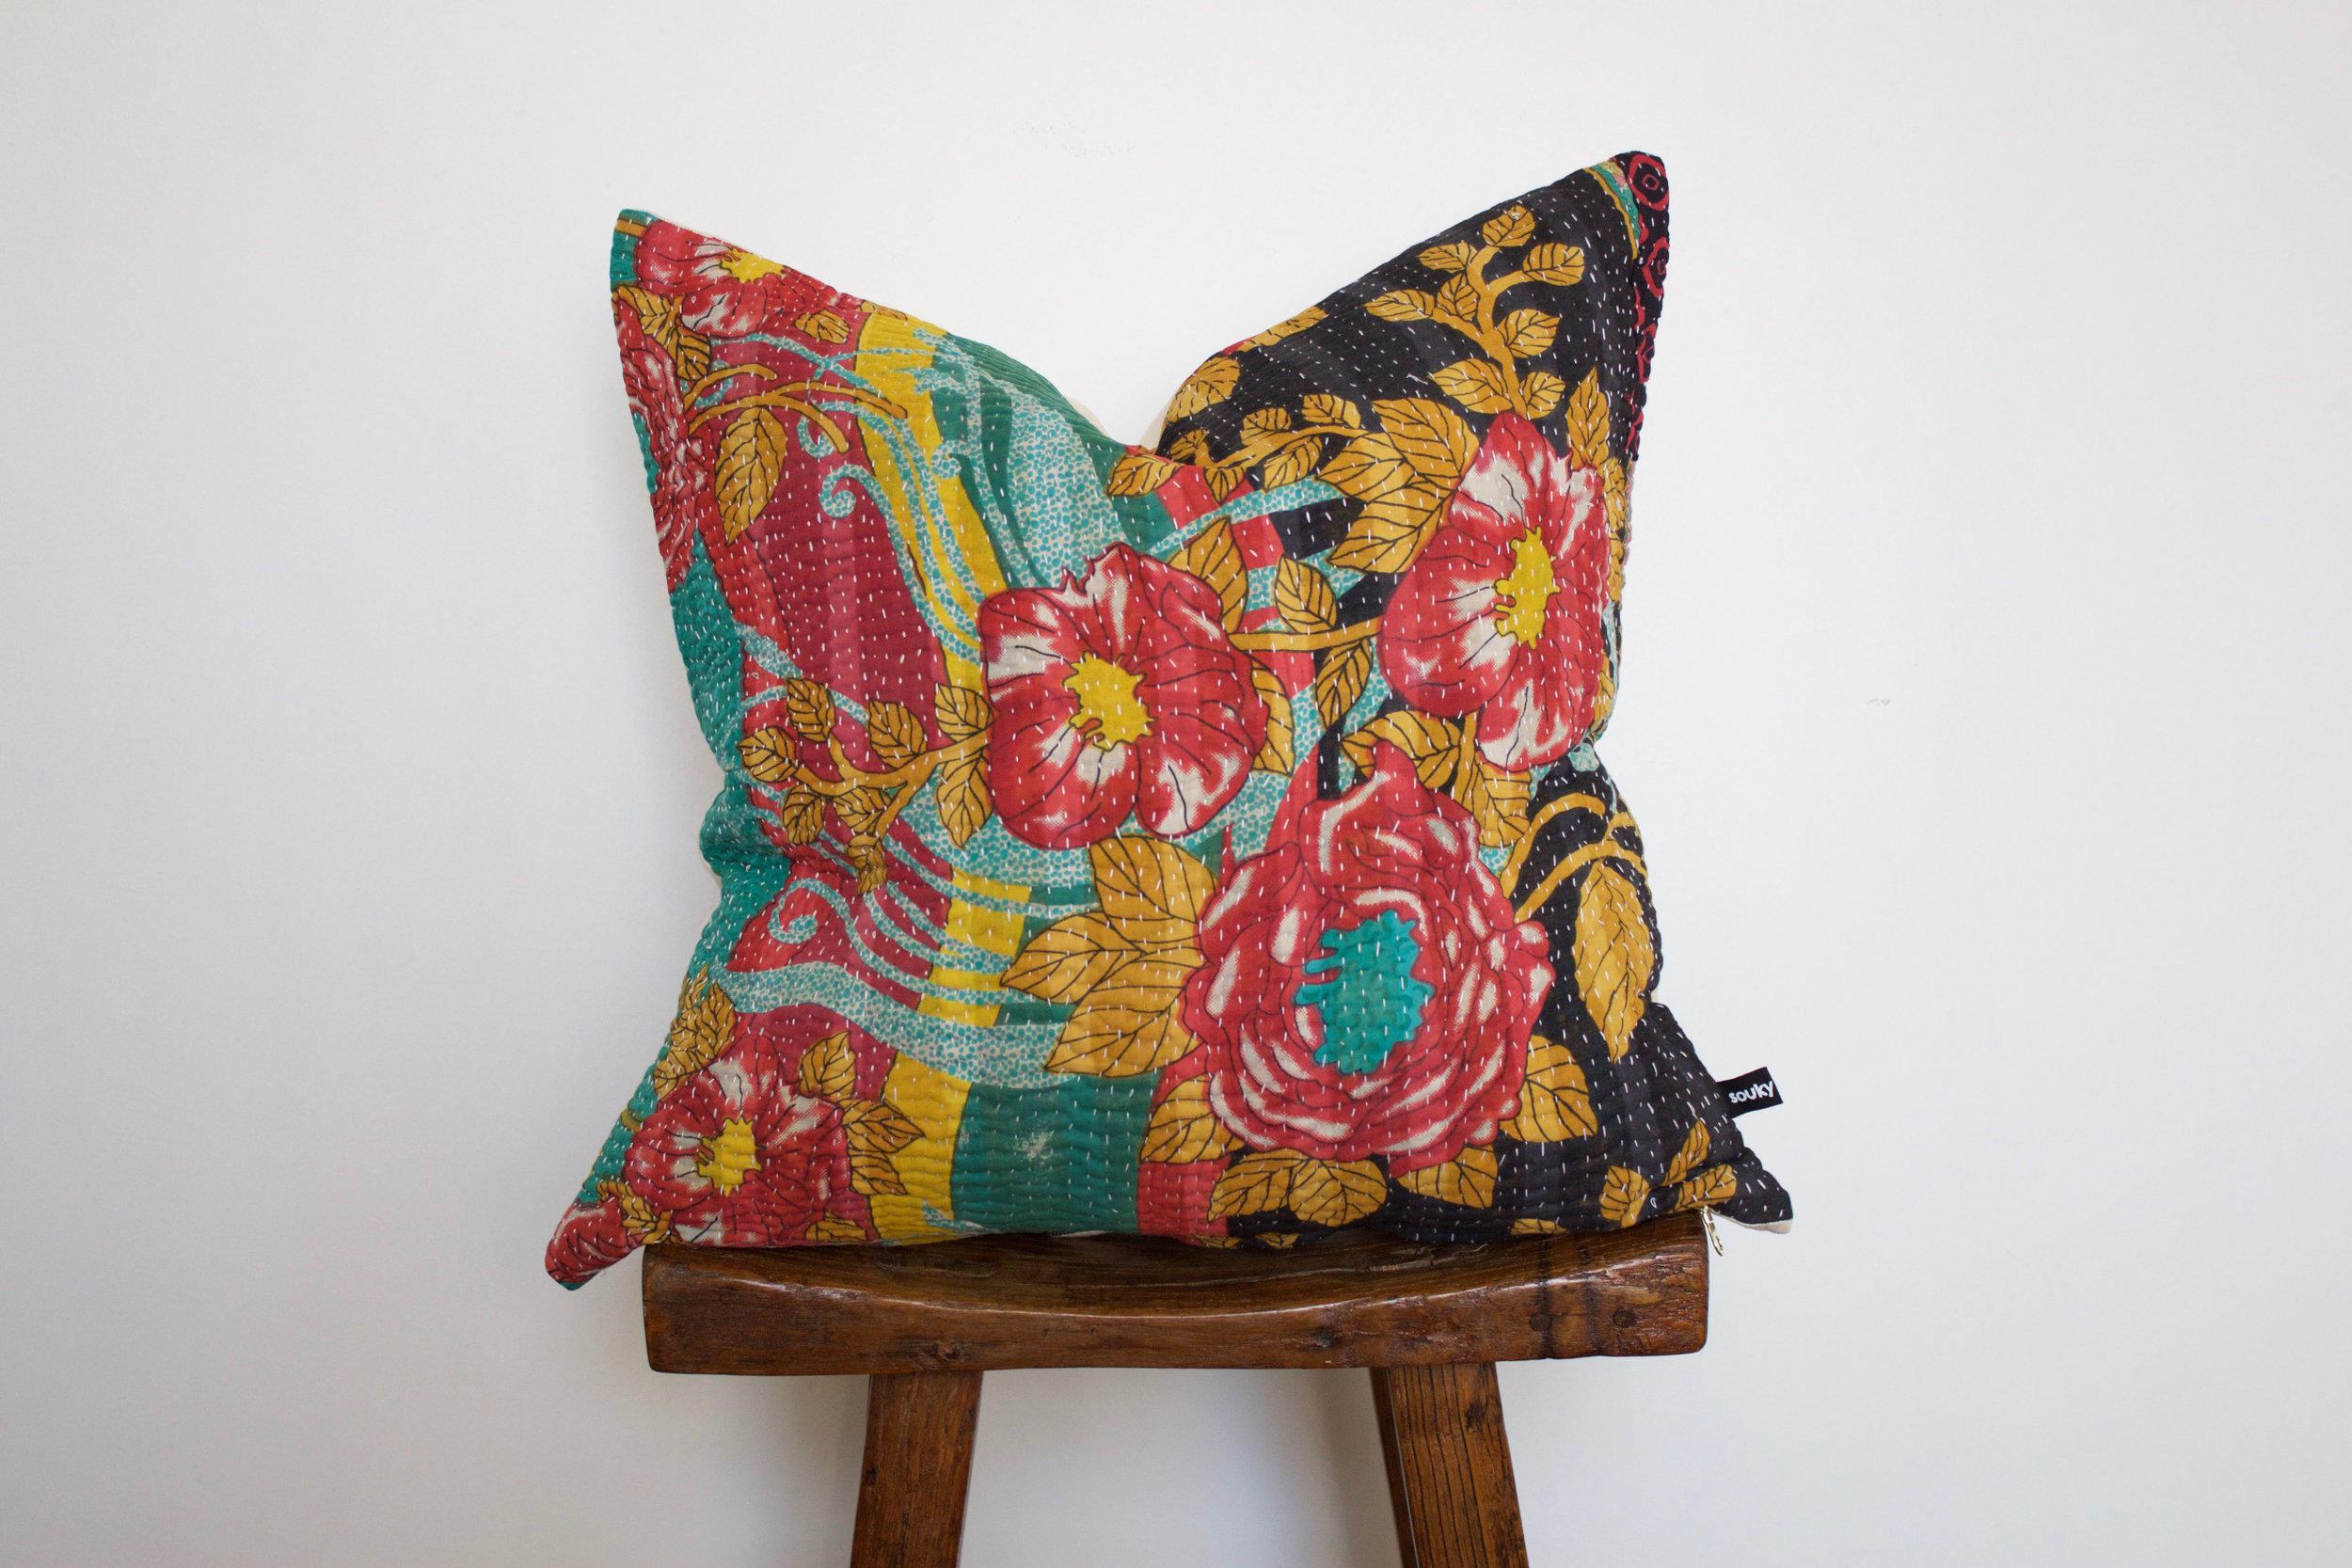 Rosie - No. 220   300 RMB  Pillow cover is made from worn sari fabric sourced from India  Size: Roughly 50x50 cm  Pillow back is made from a neutral cotton/linen blend  Zipper on bottom of pillow  Down insert included  Dry clean only